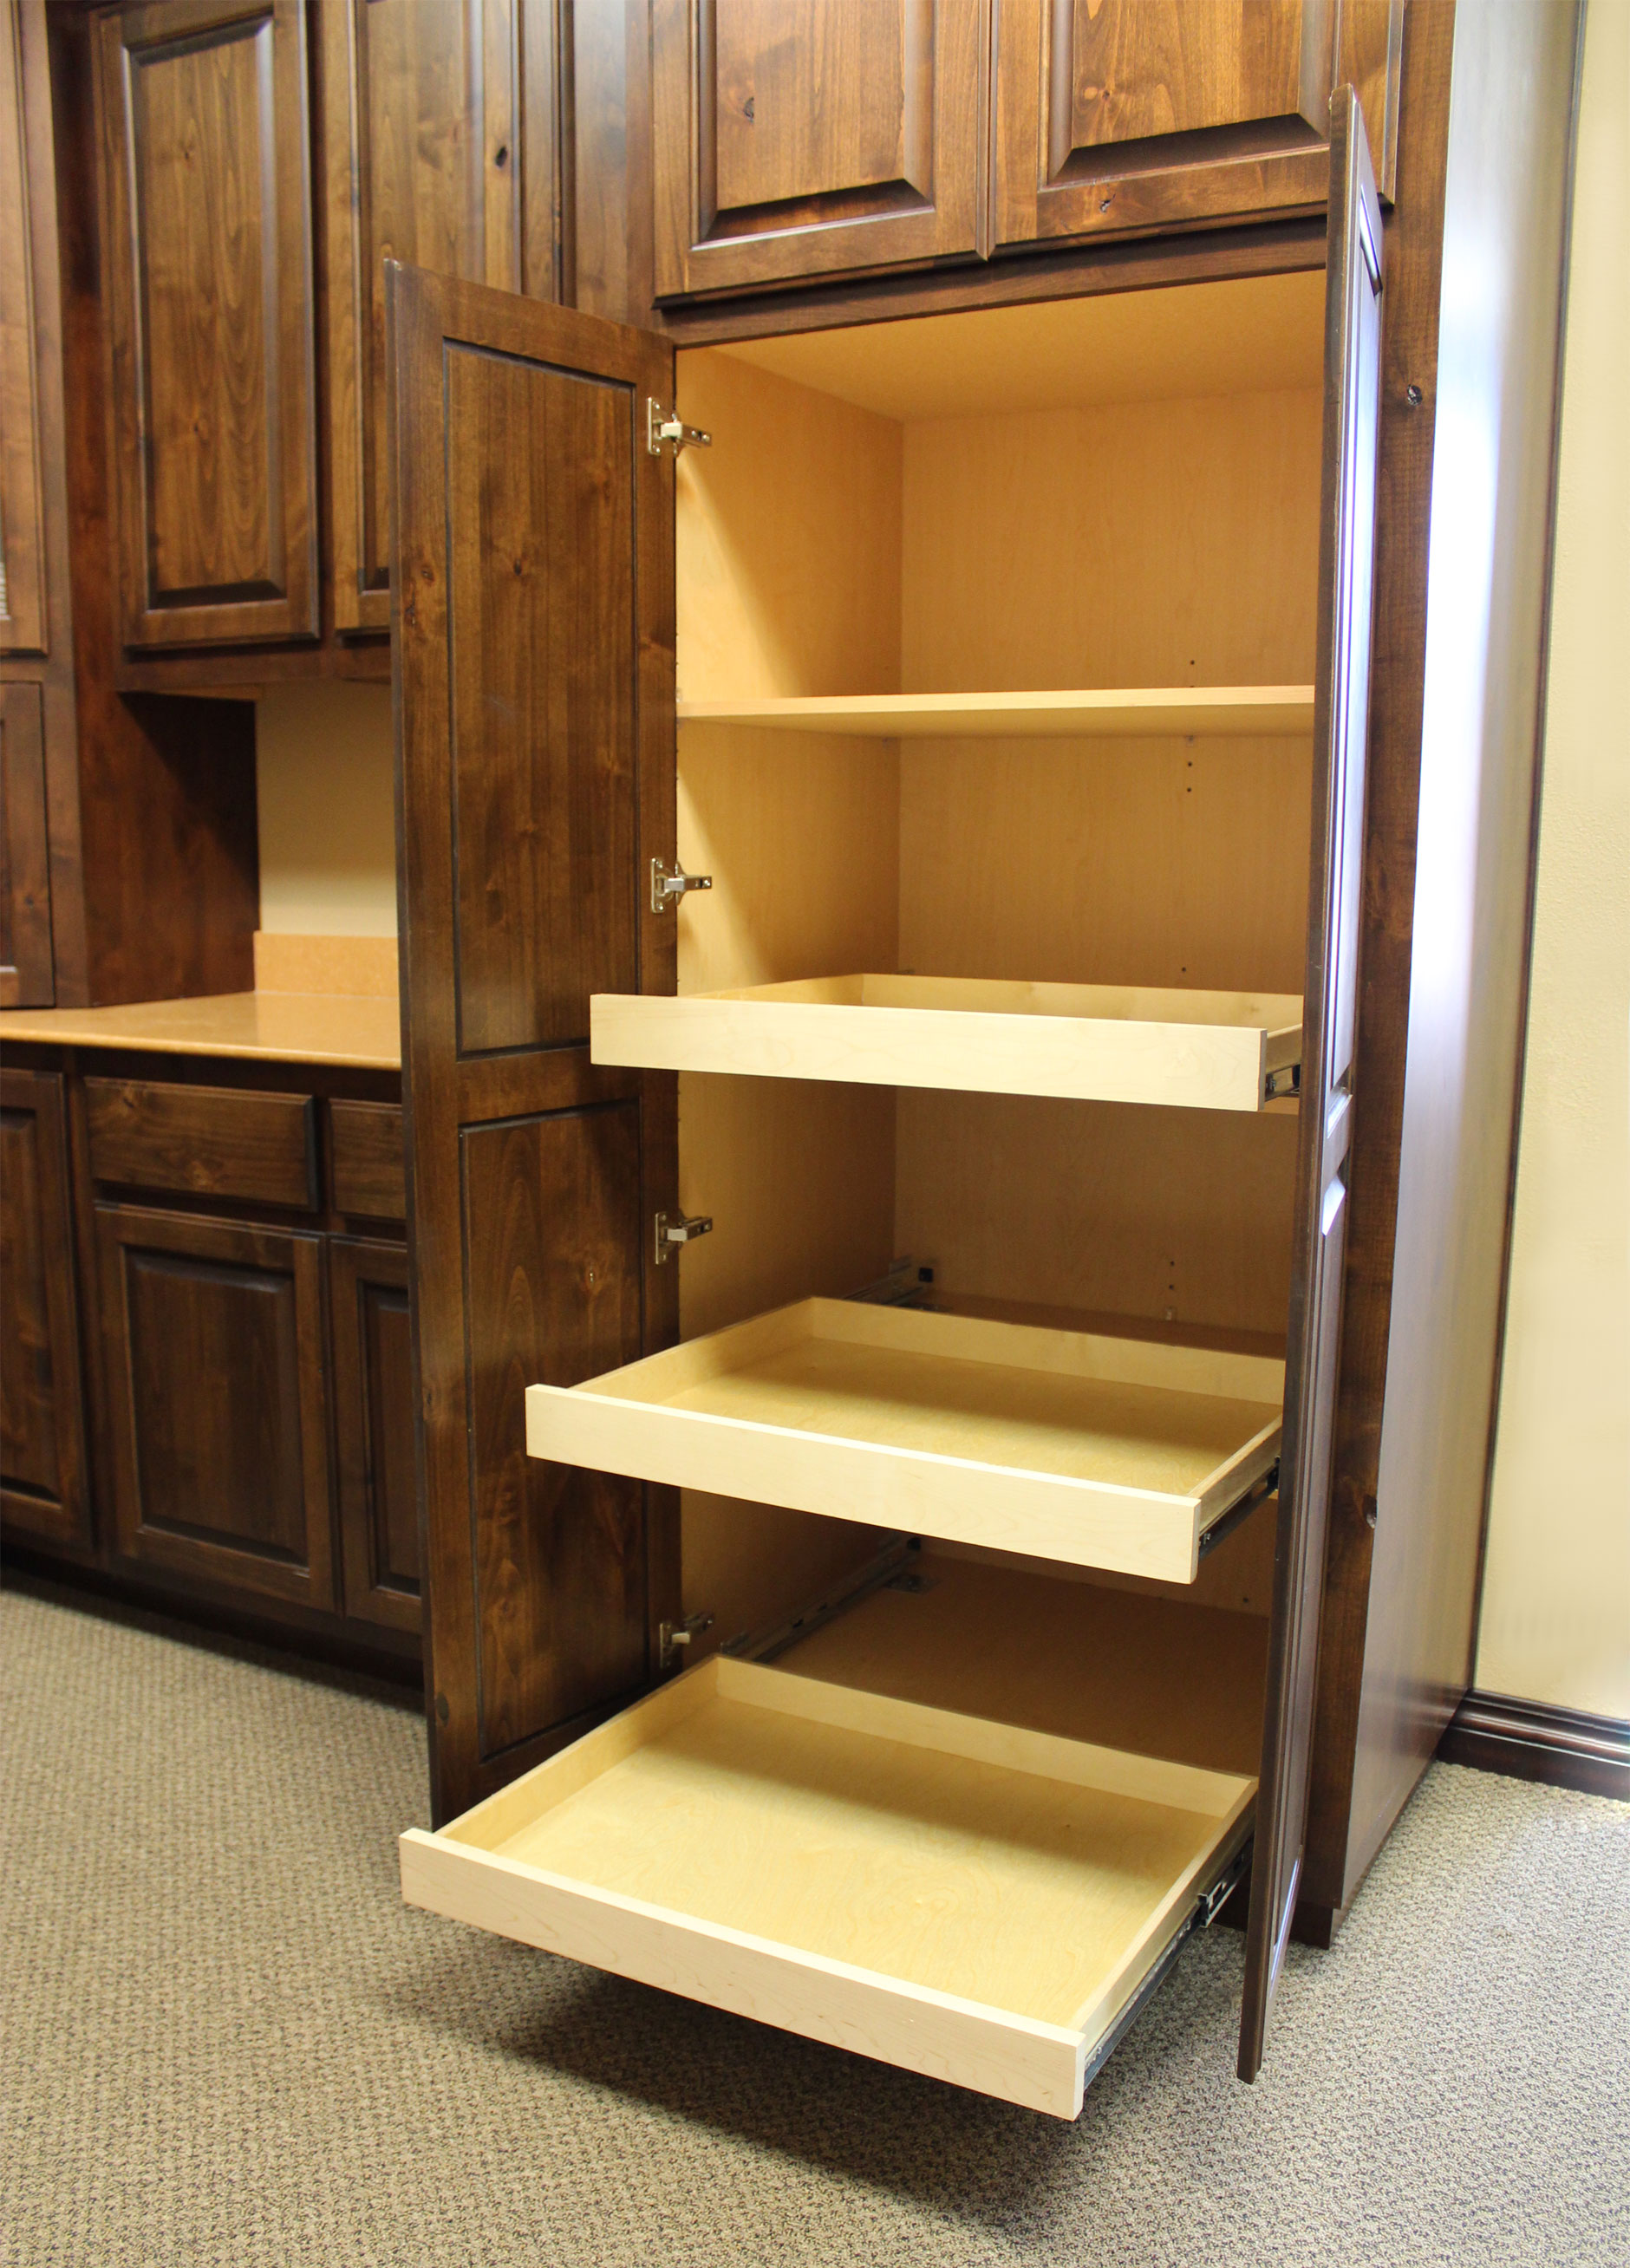 shelves for kitchen cabinets drawers image to u